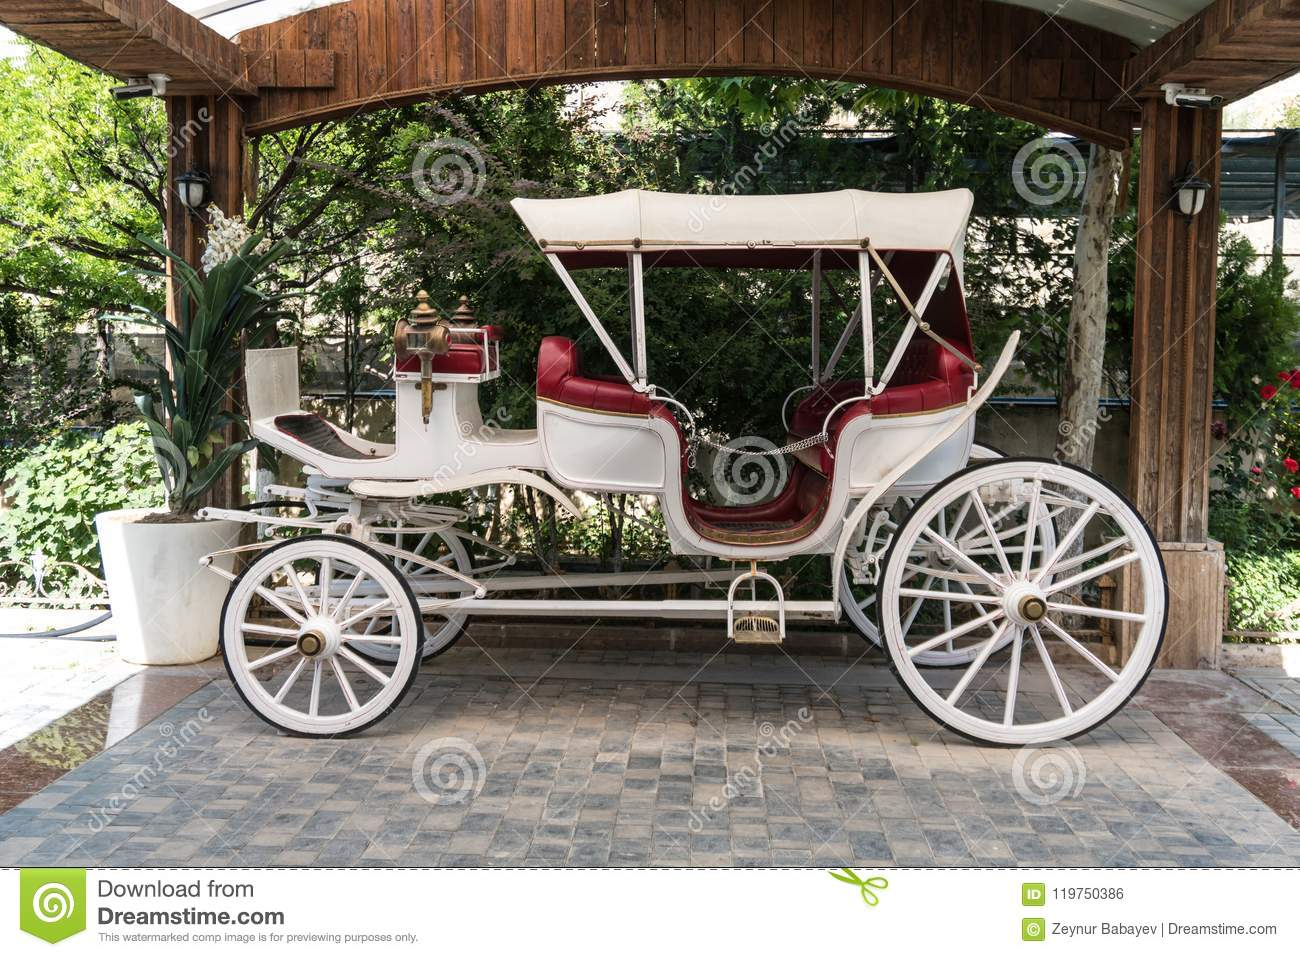 Old Or Antique White Horse Drawn Carriage Mock Up Stock Photo Image Of Carriage People 119750386